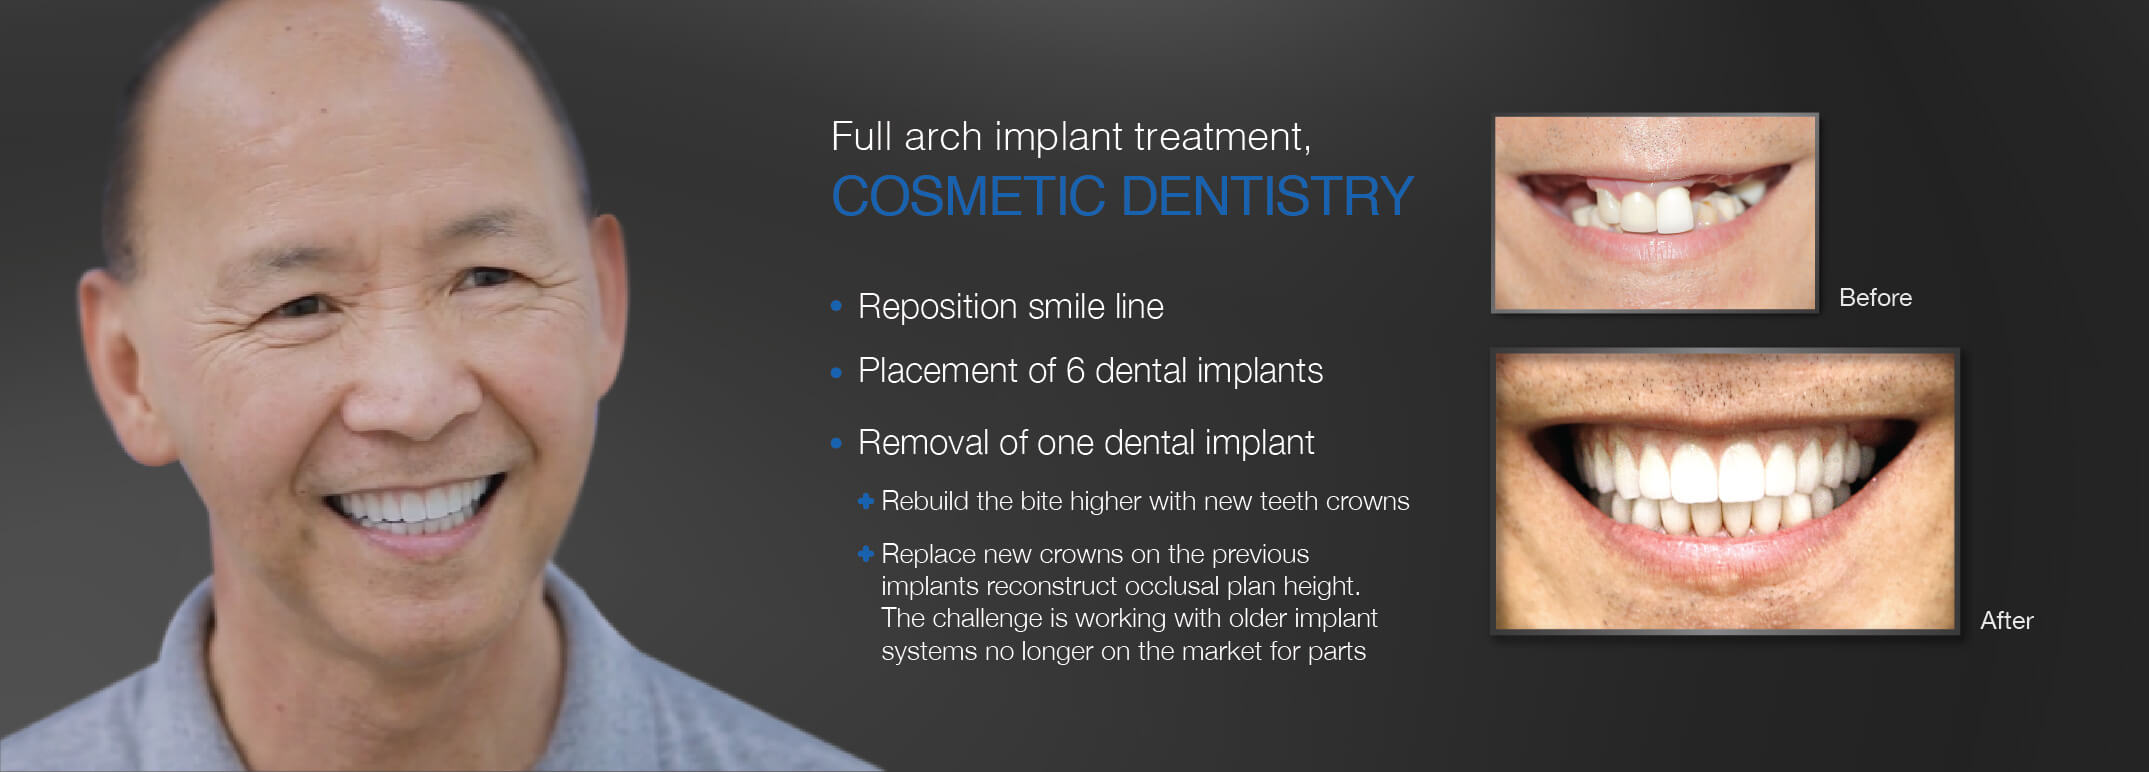 implant-treatment-and-cosmetic-dentistry-at-westcoast